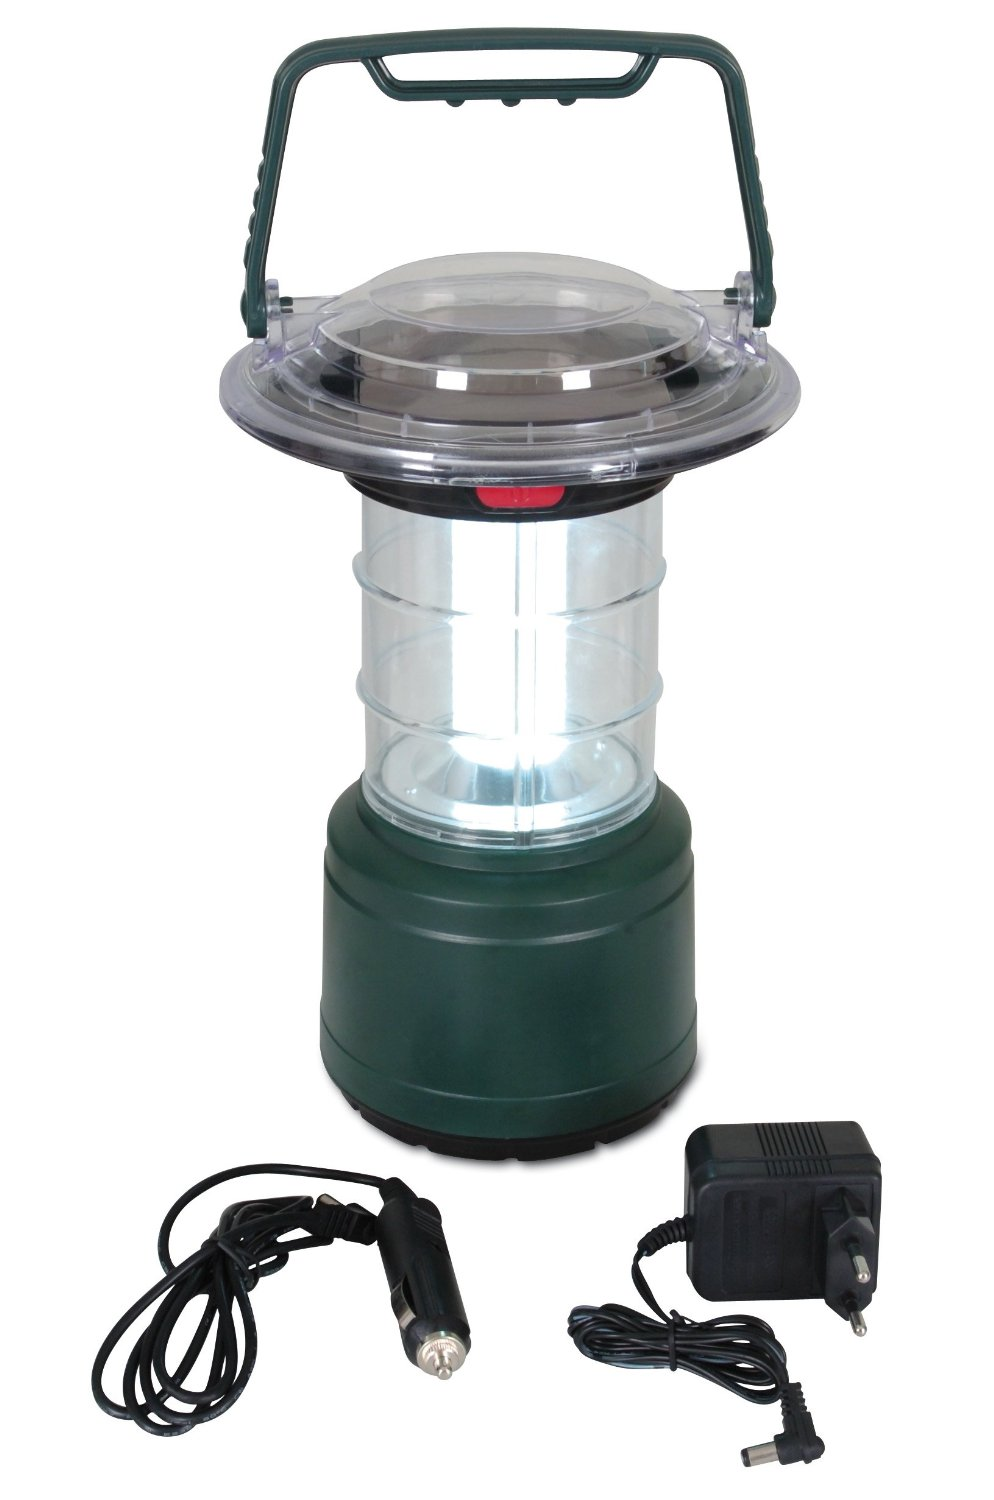 Lampe Energie Solaire Interieur lanterne solaire camping - lampe solaire nomade | objetsolaire